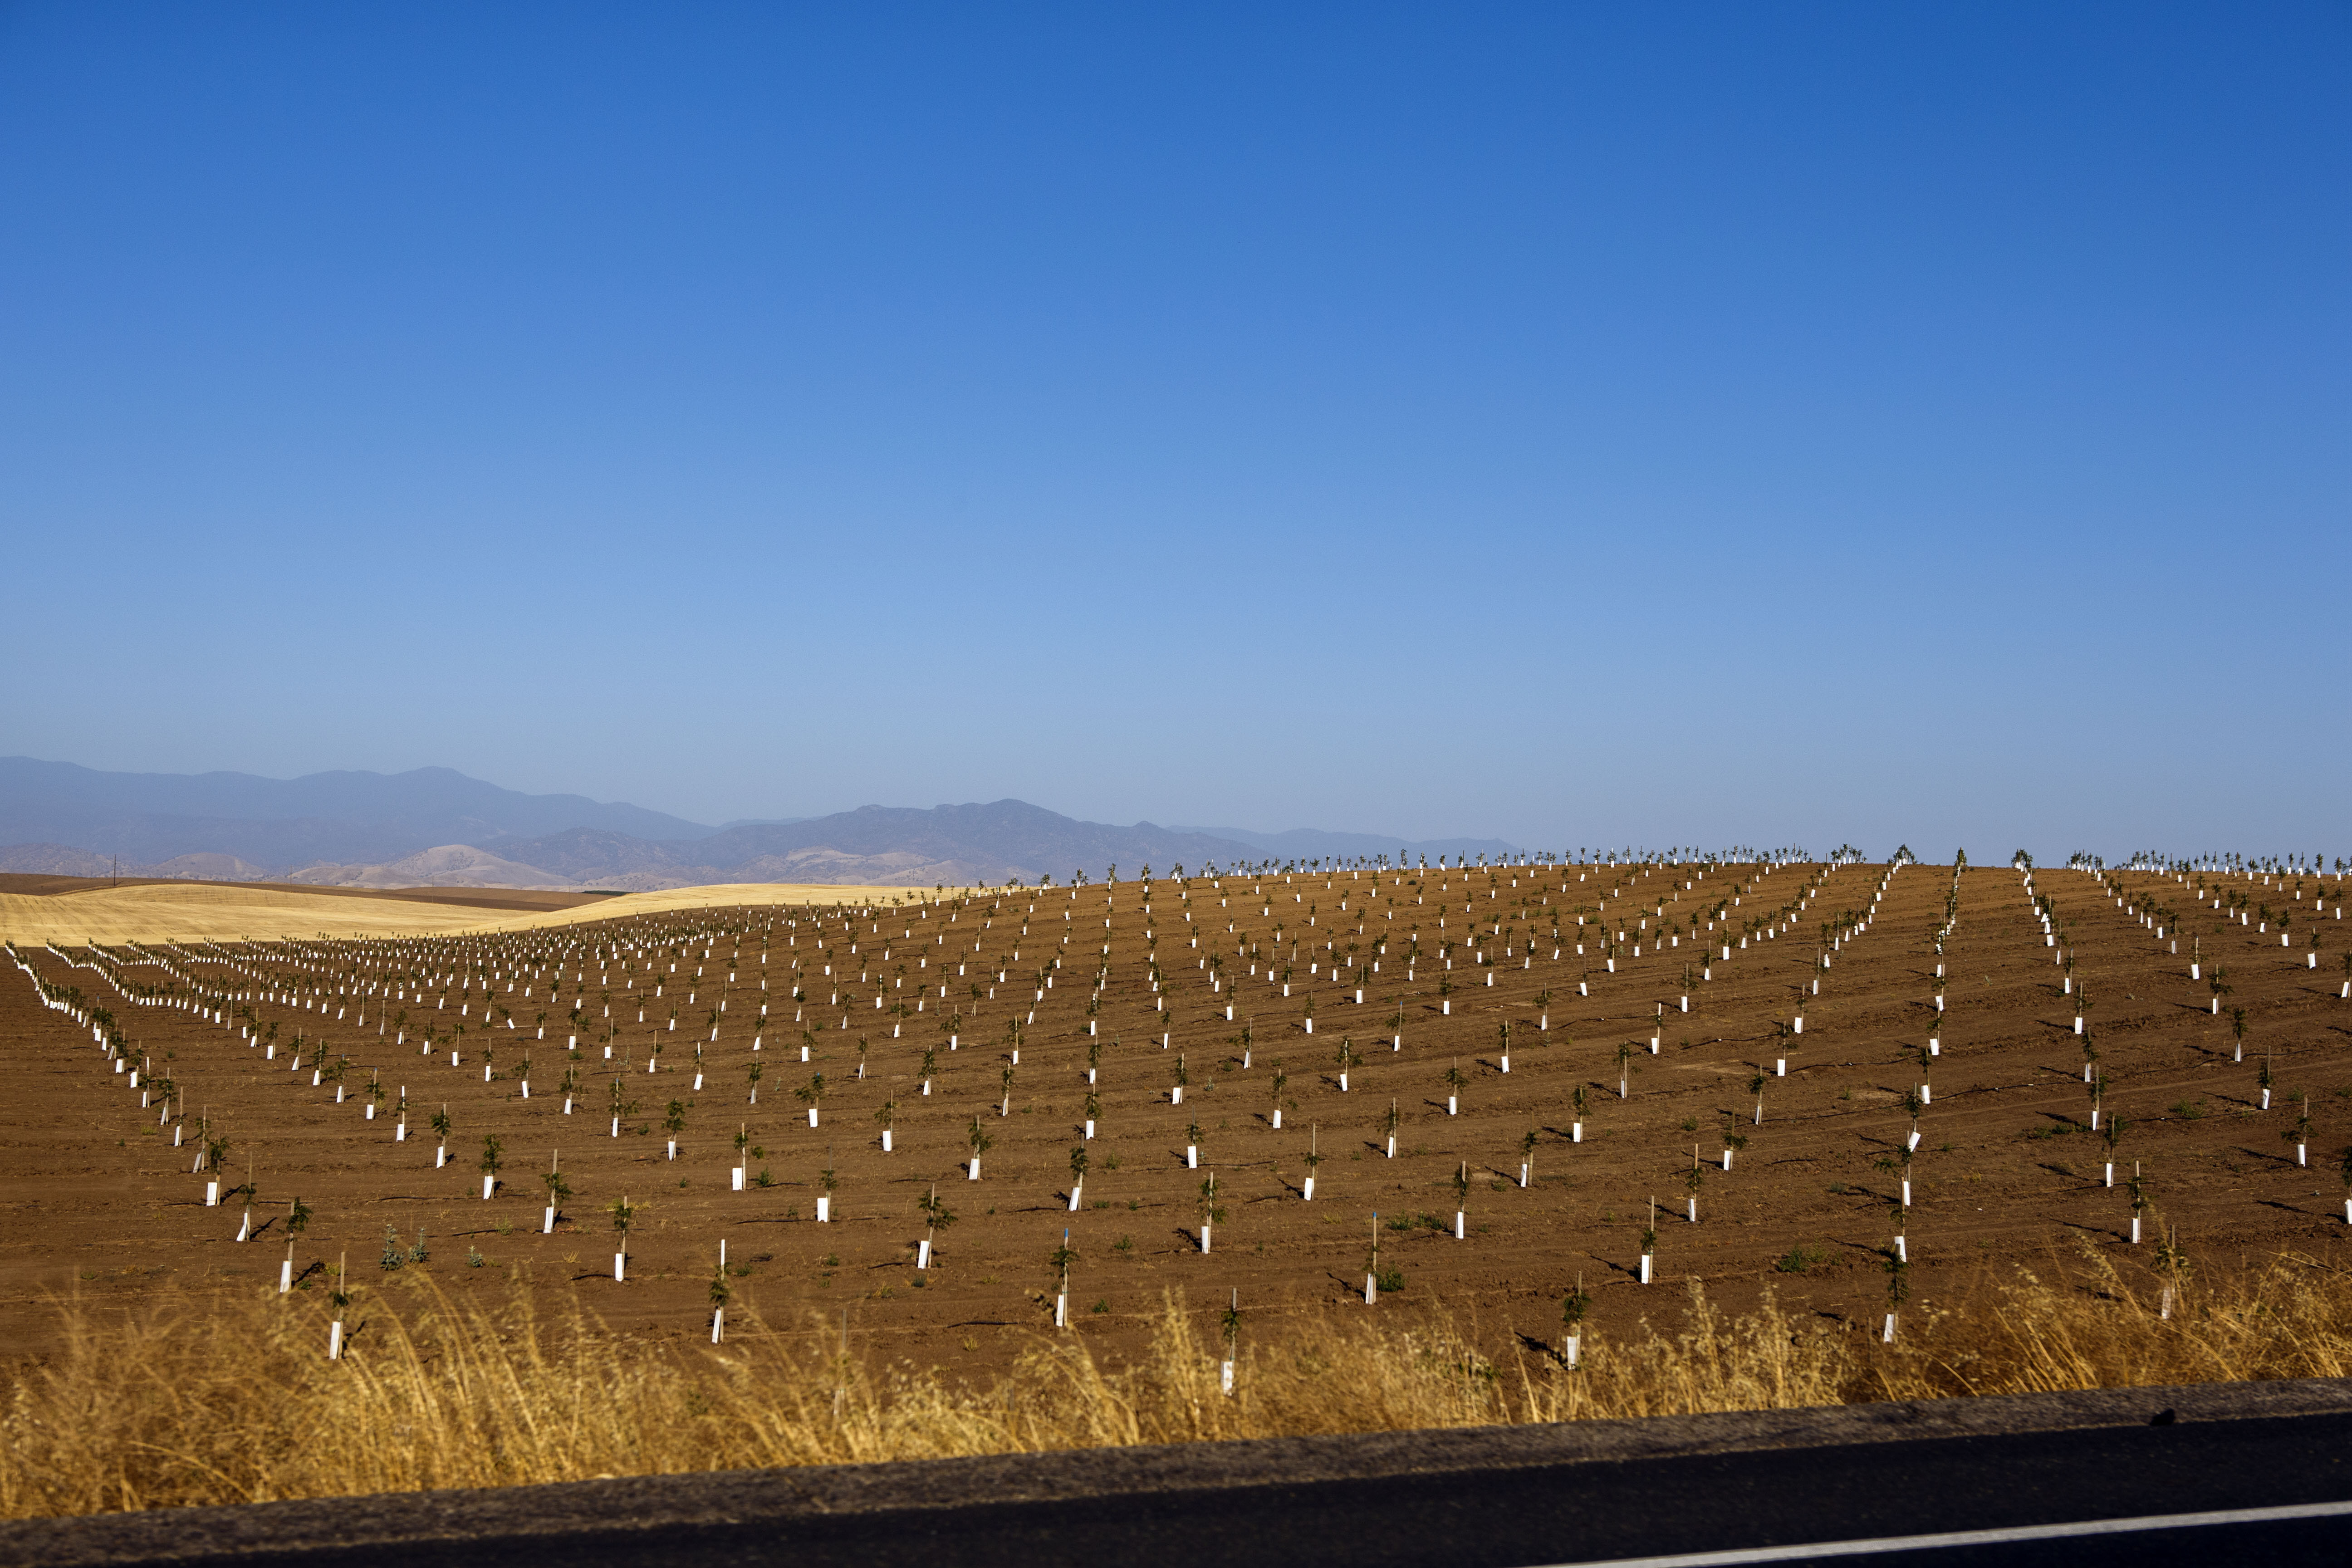 A field of recently planted crops grows off California Highway 65, near Ducor and south of Porterville during the historic California drought on June 24, 2015 near Ducor, Calif. The rural poor depend on groundwater and with farmers digging deep to water their fields,  communities relying on groundwater struggle.